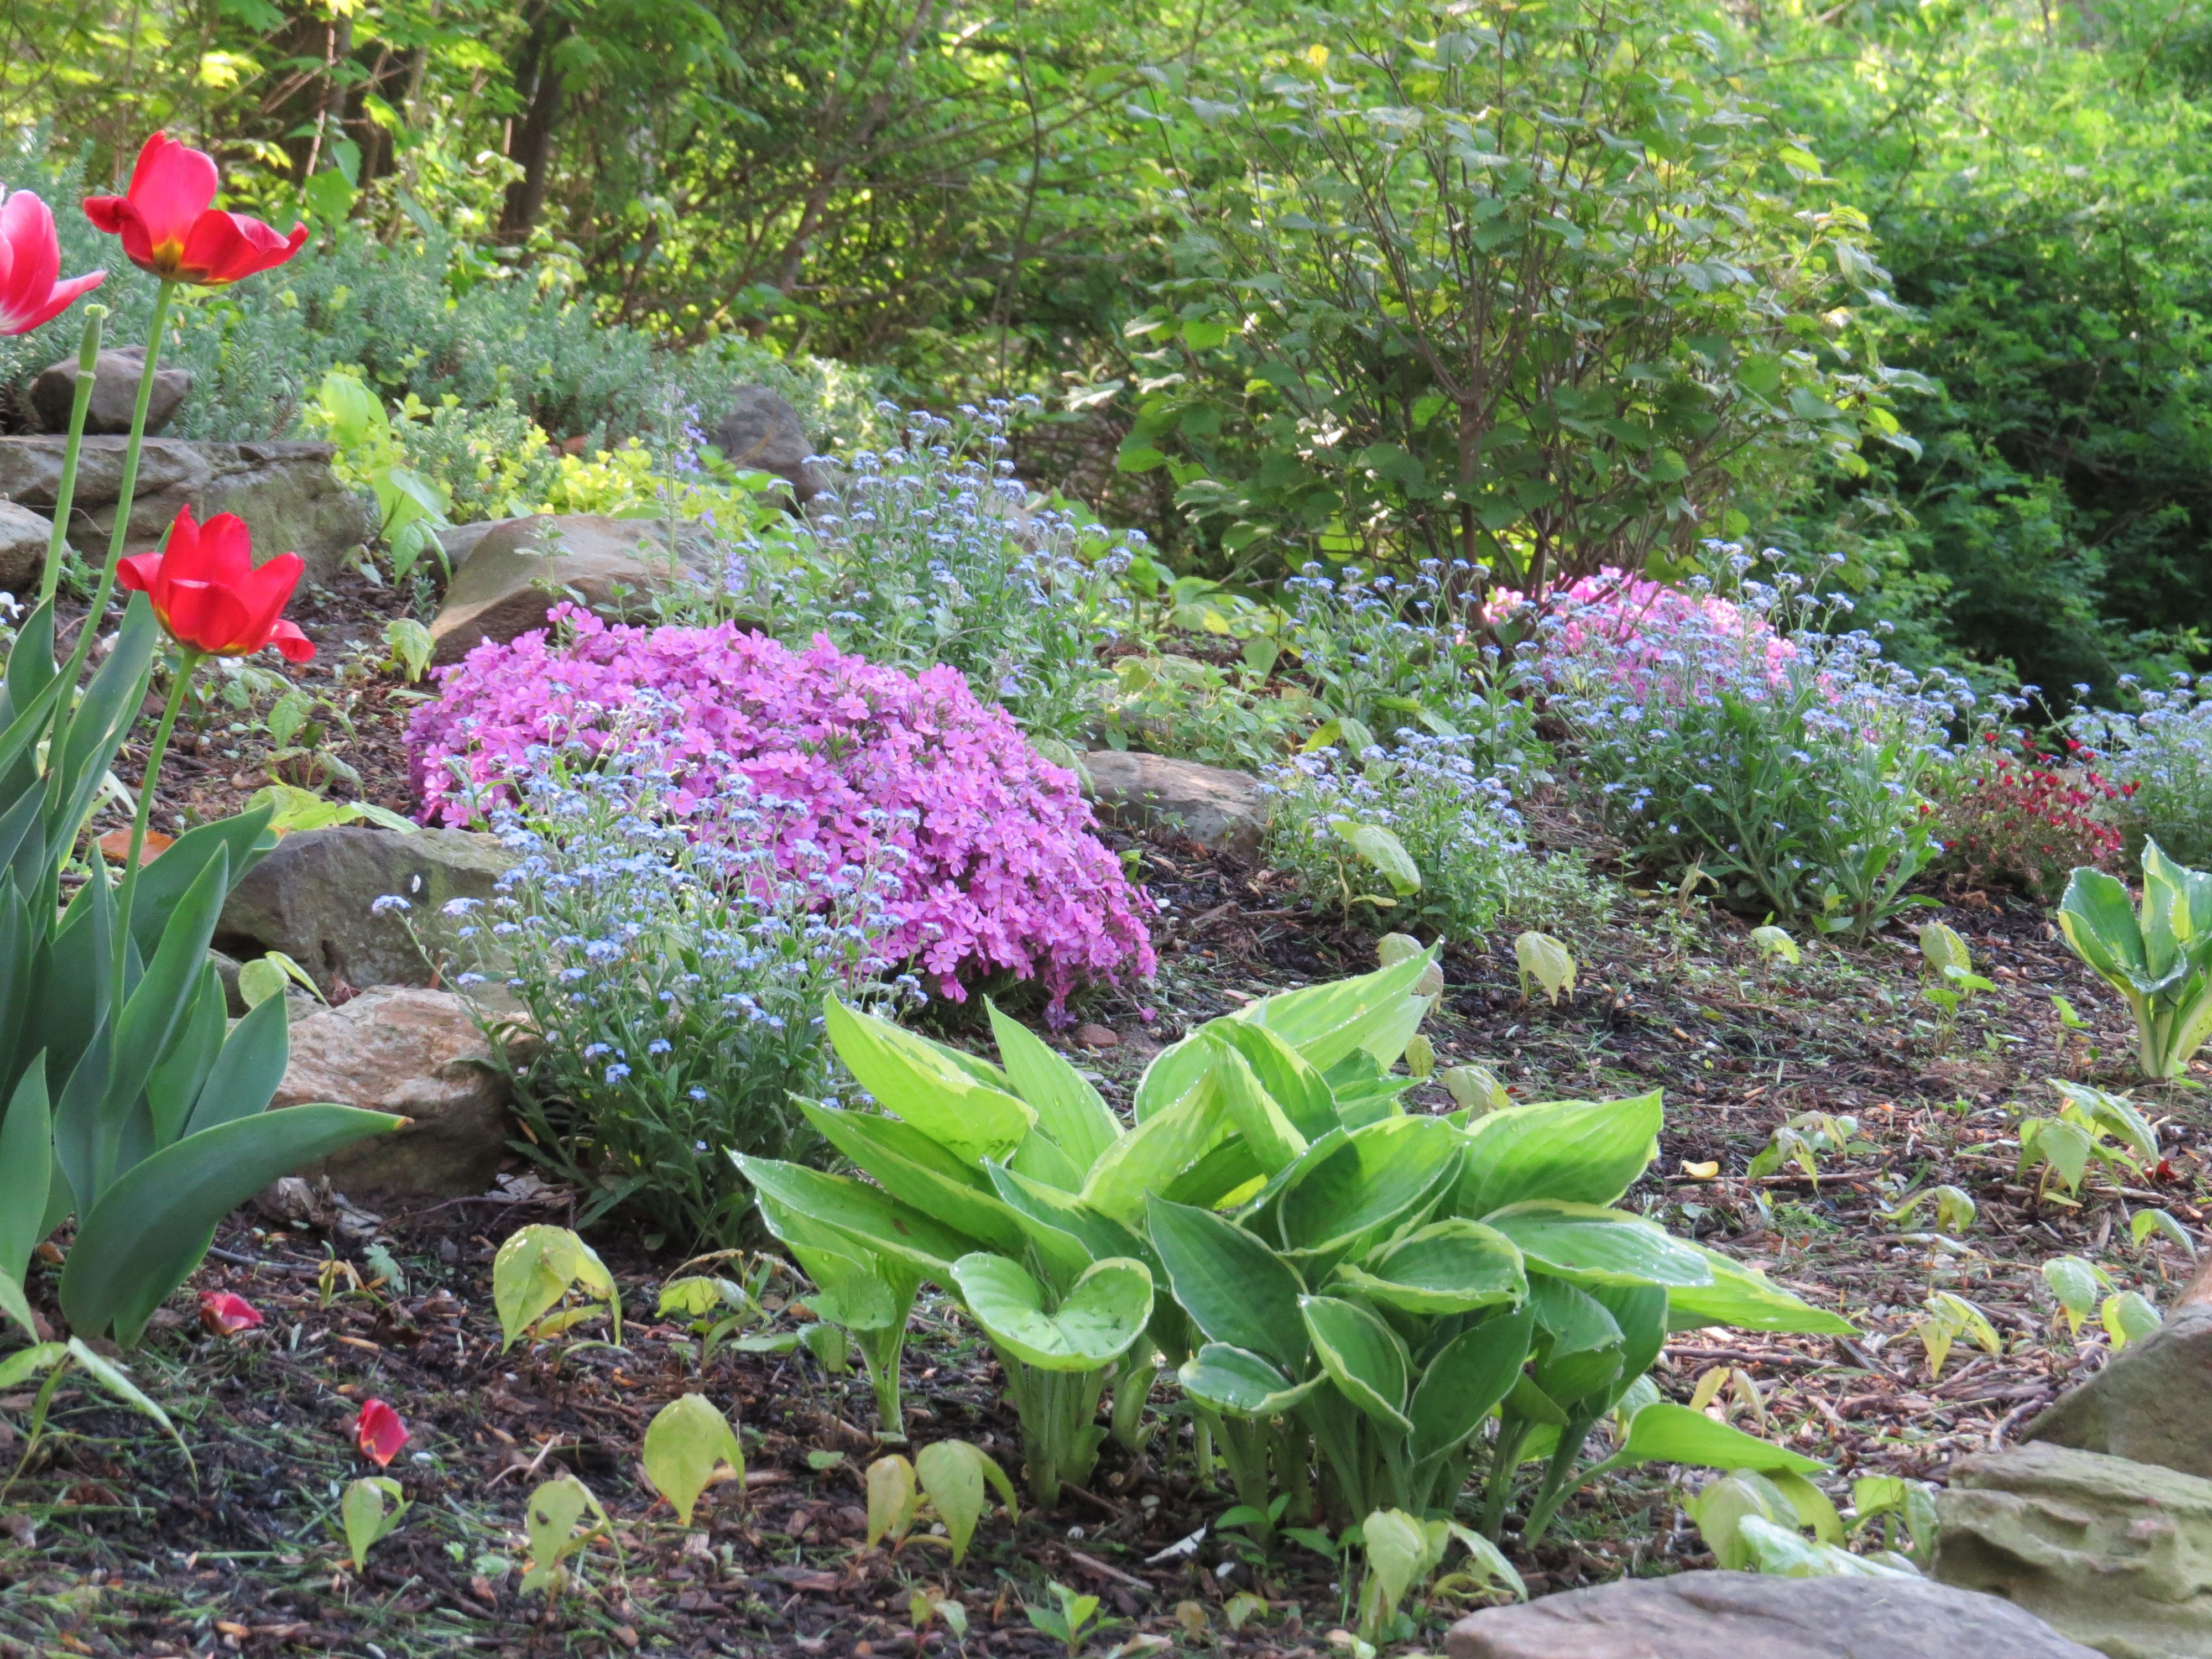 Rock garden in shade Hosta creeping phlox and for me nots